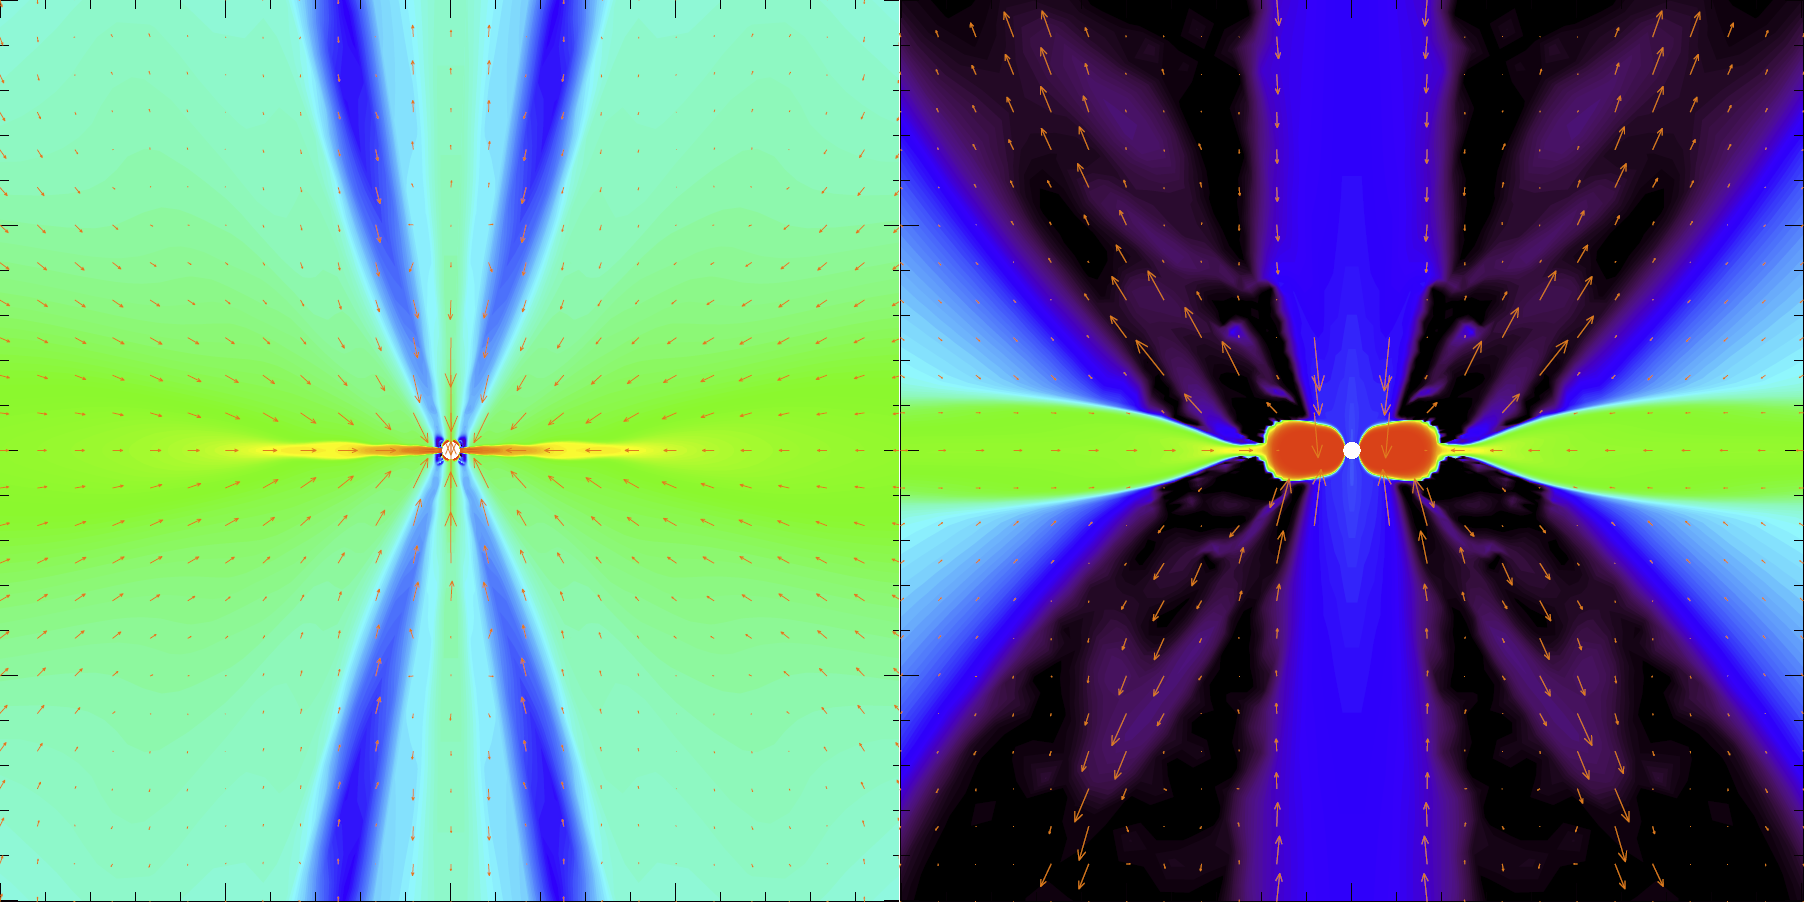 The plot on the left shows the density distribution in a collapsing gas cloud for the standard distribution of grain sizes. Even though there is a concentration towards the centre, the disc is not rotationally supported, i.e., not stable enough to form stars and planets. The plot on the right shows the same, but with the smallest grains removed. In this case, there angular momentum influx to the disc leading to a much larger, rotationally supported disc. Click the image for a full-size version. Illustration credit: MPE.